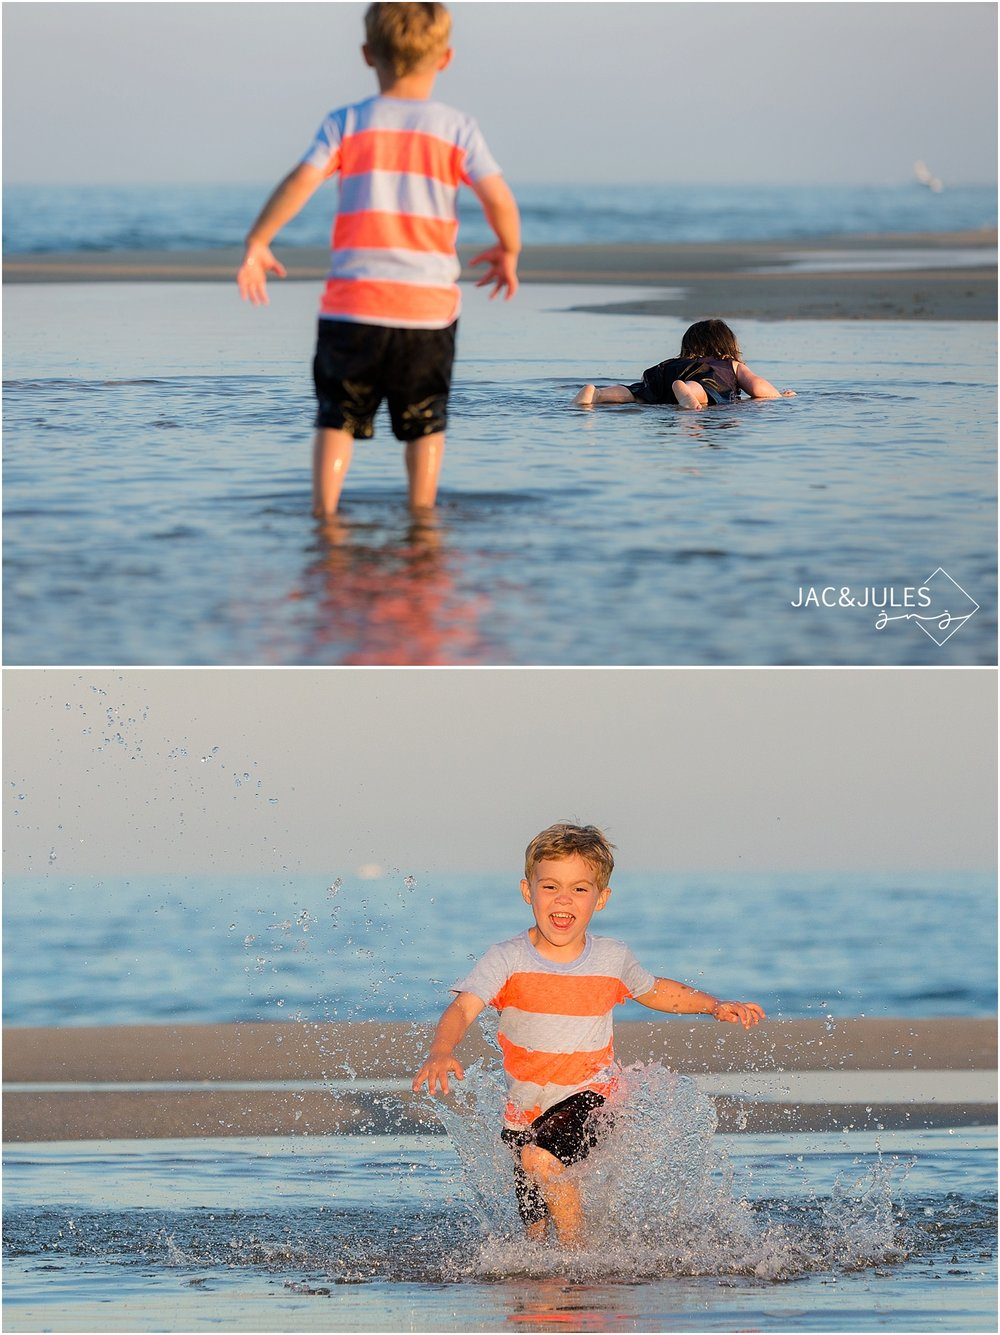 jacnjules takes fun family beach portraits in manasquan, nj